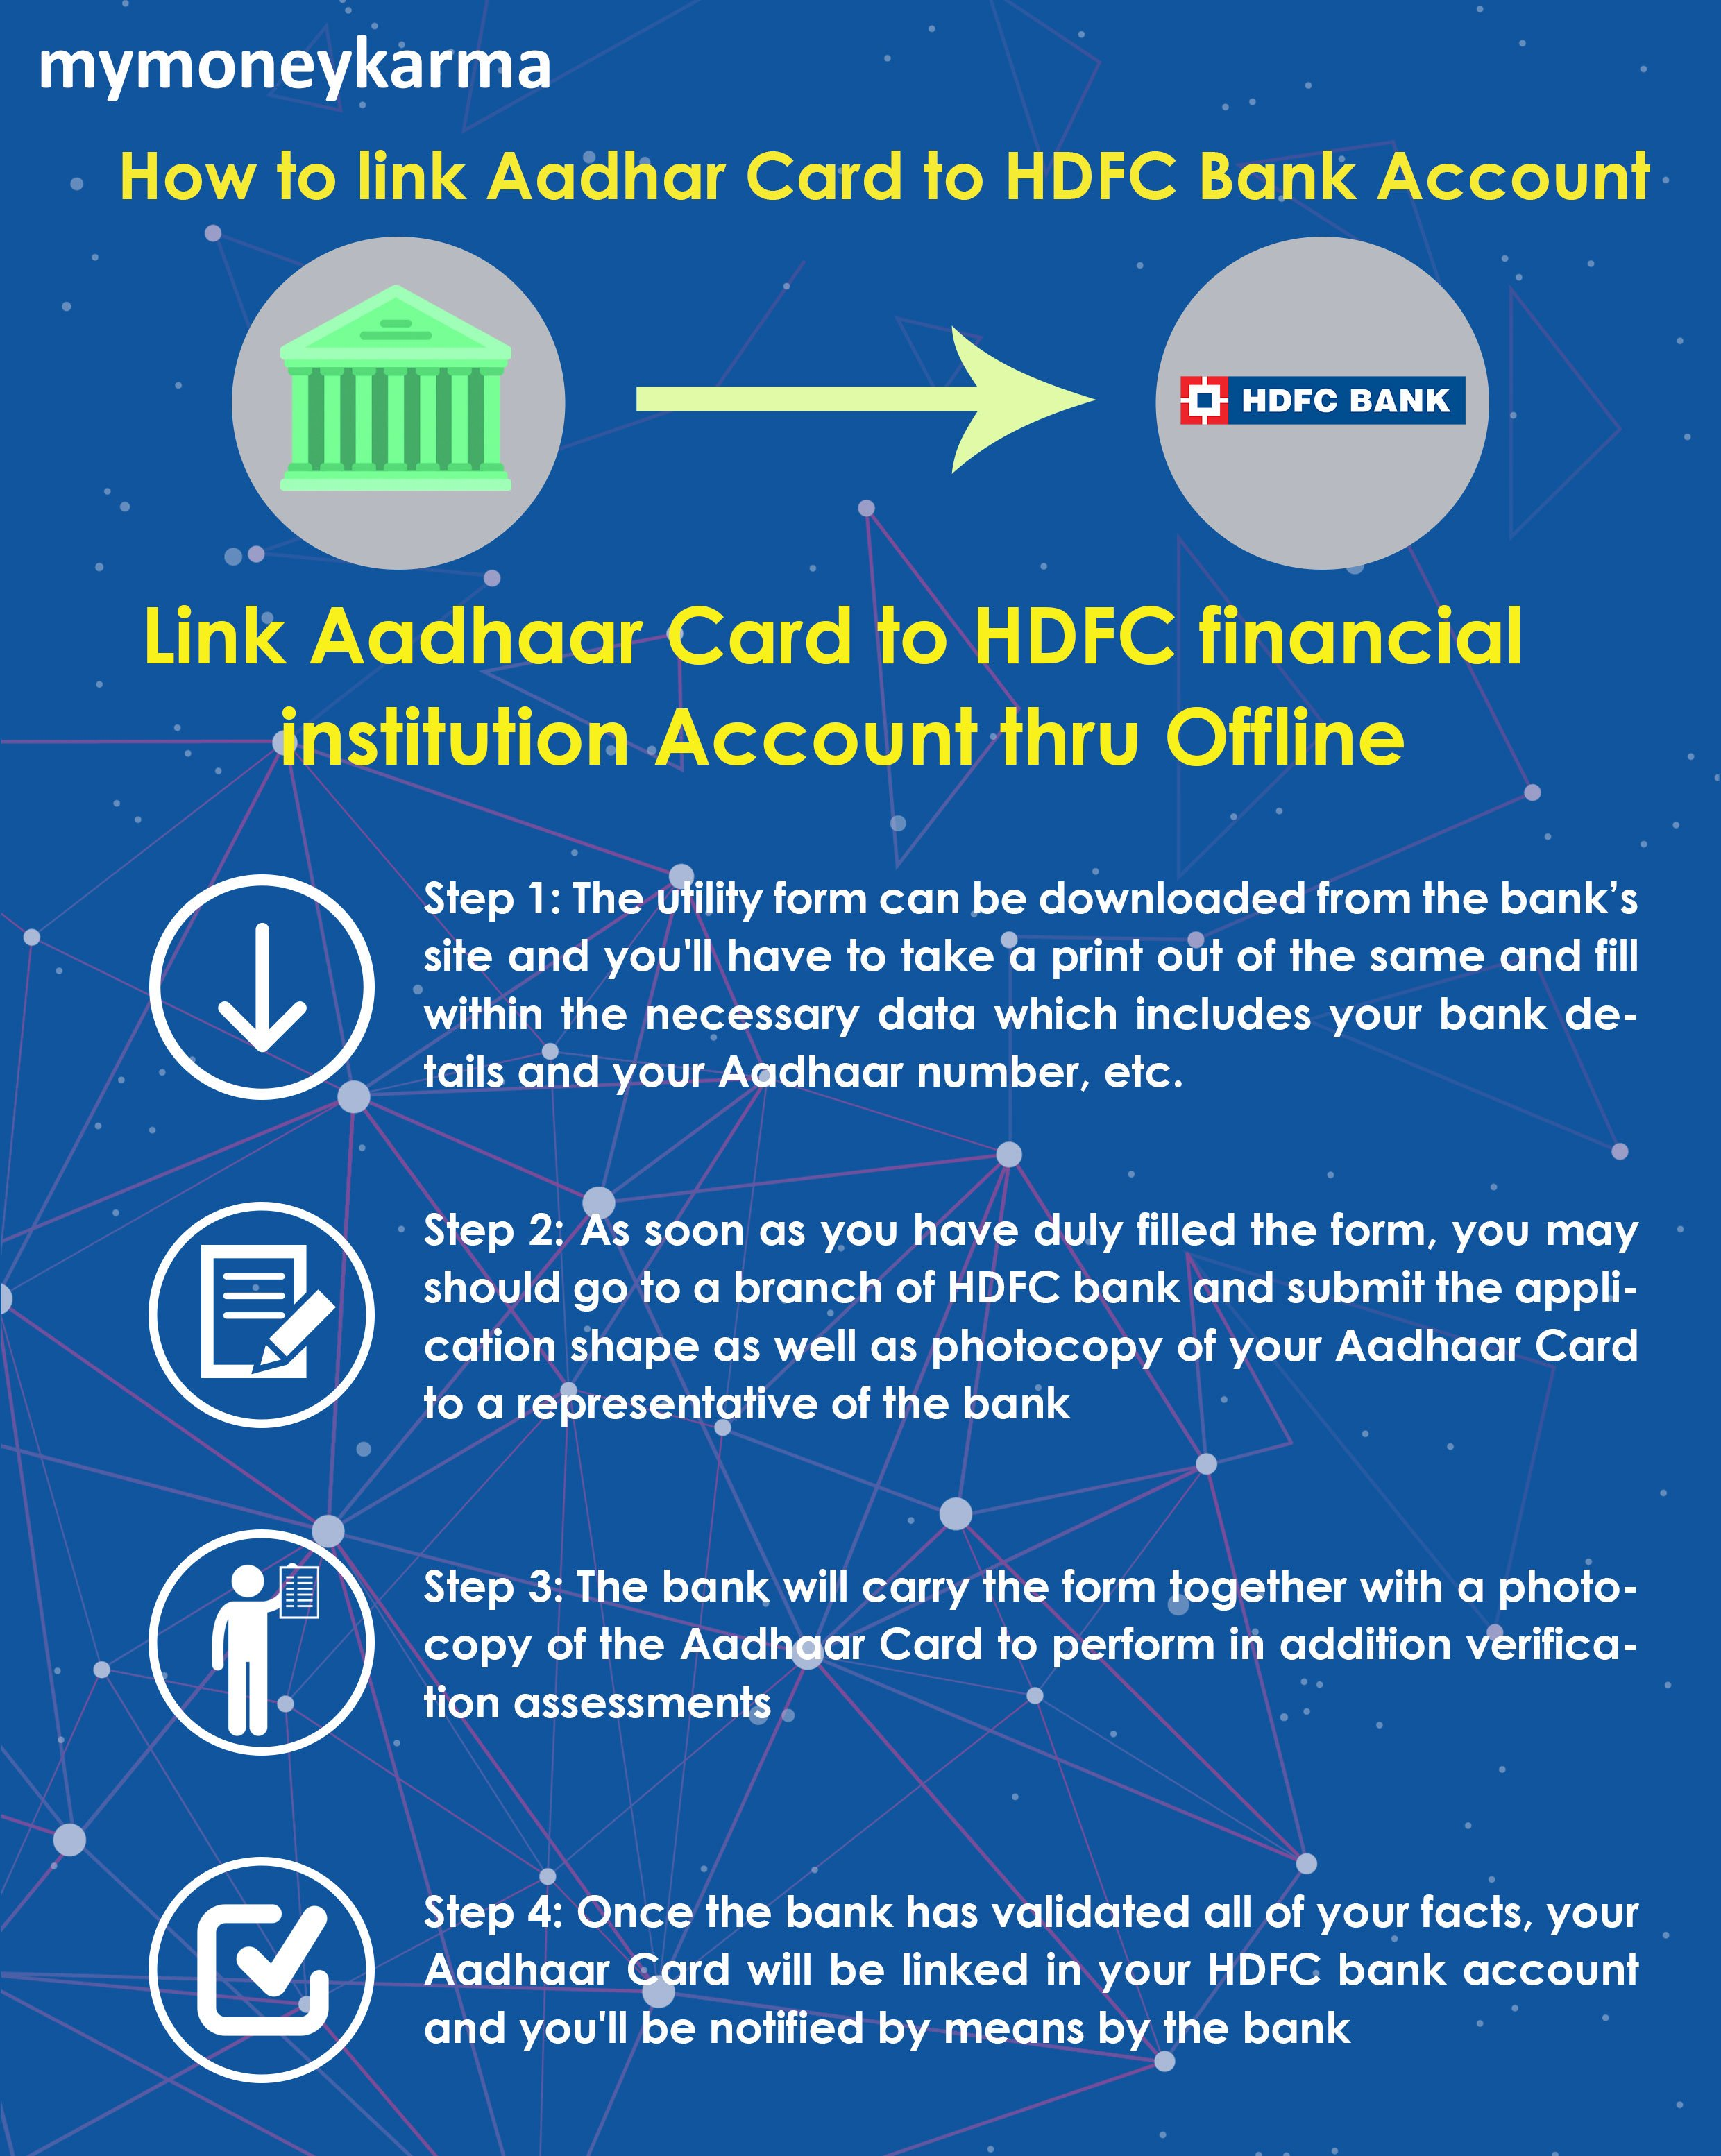 hdfc mobile banking application form